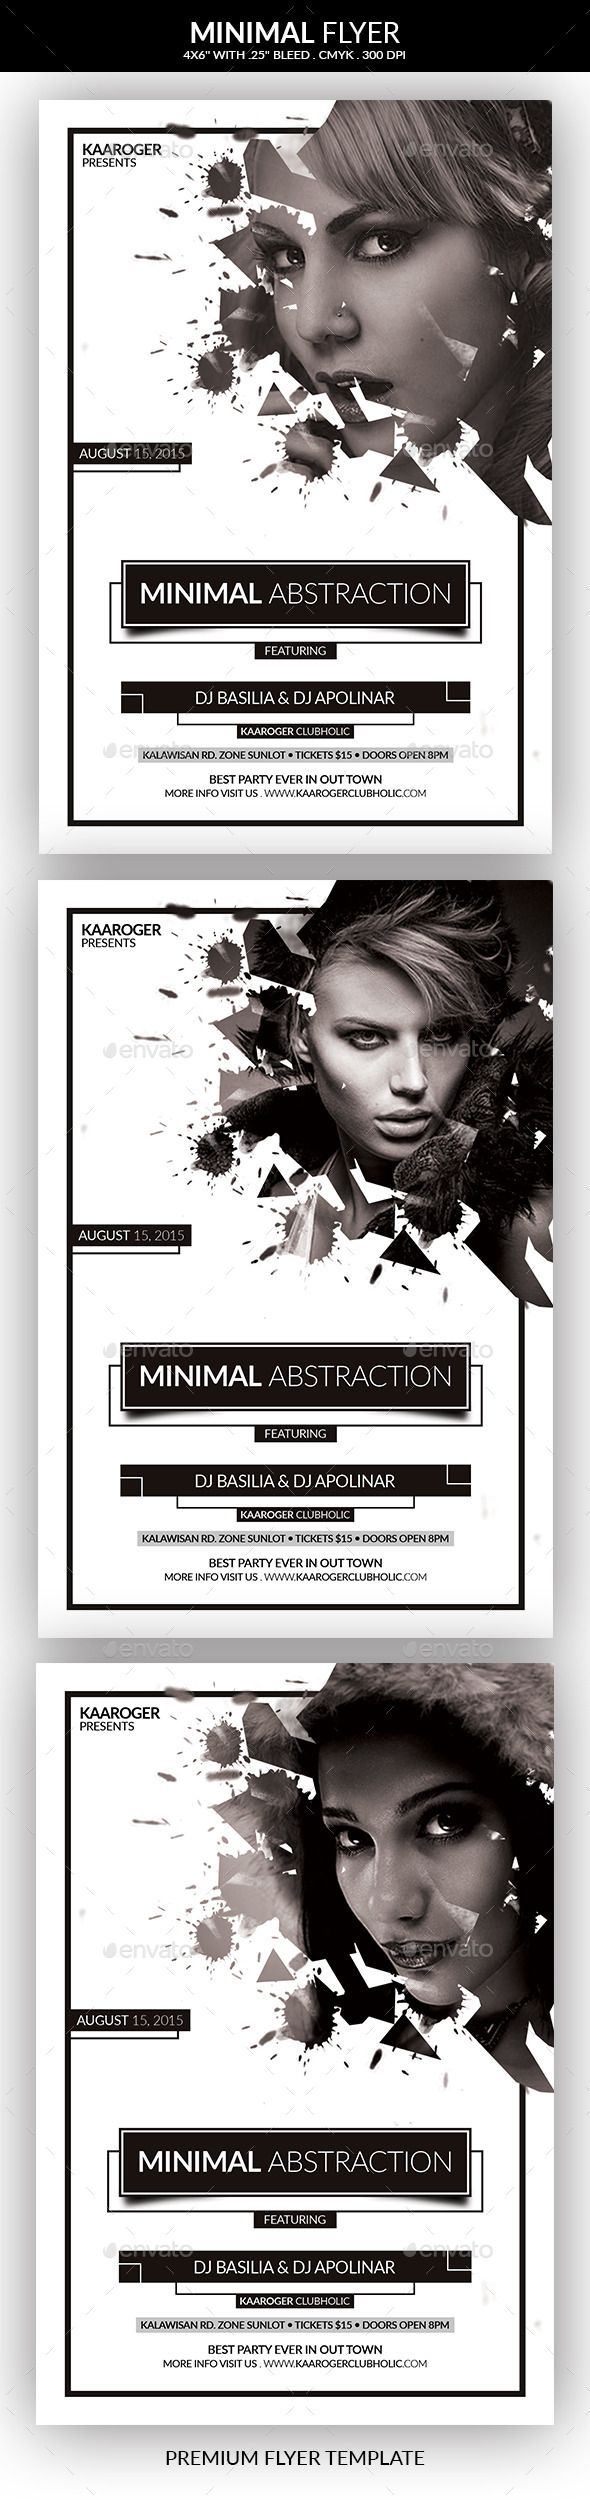 Minimal Flyer  PSD Template • Get it now! ➝ https://graphicriver.net/item/minimal-flyer/12321006?ref=pxcr